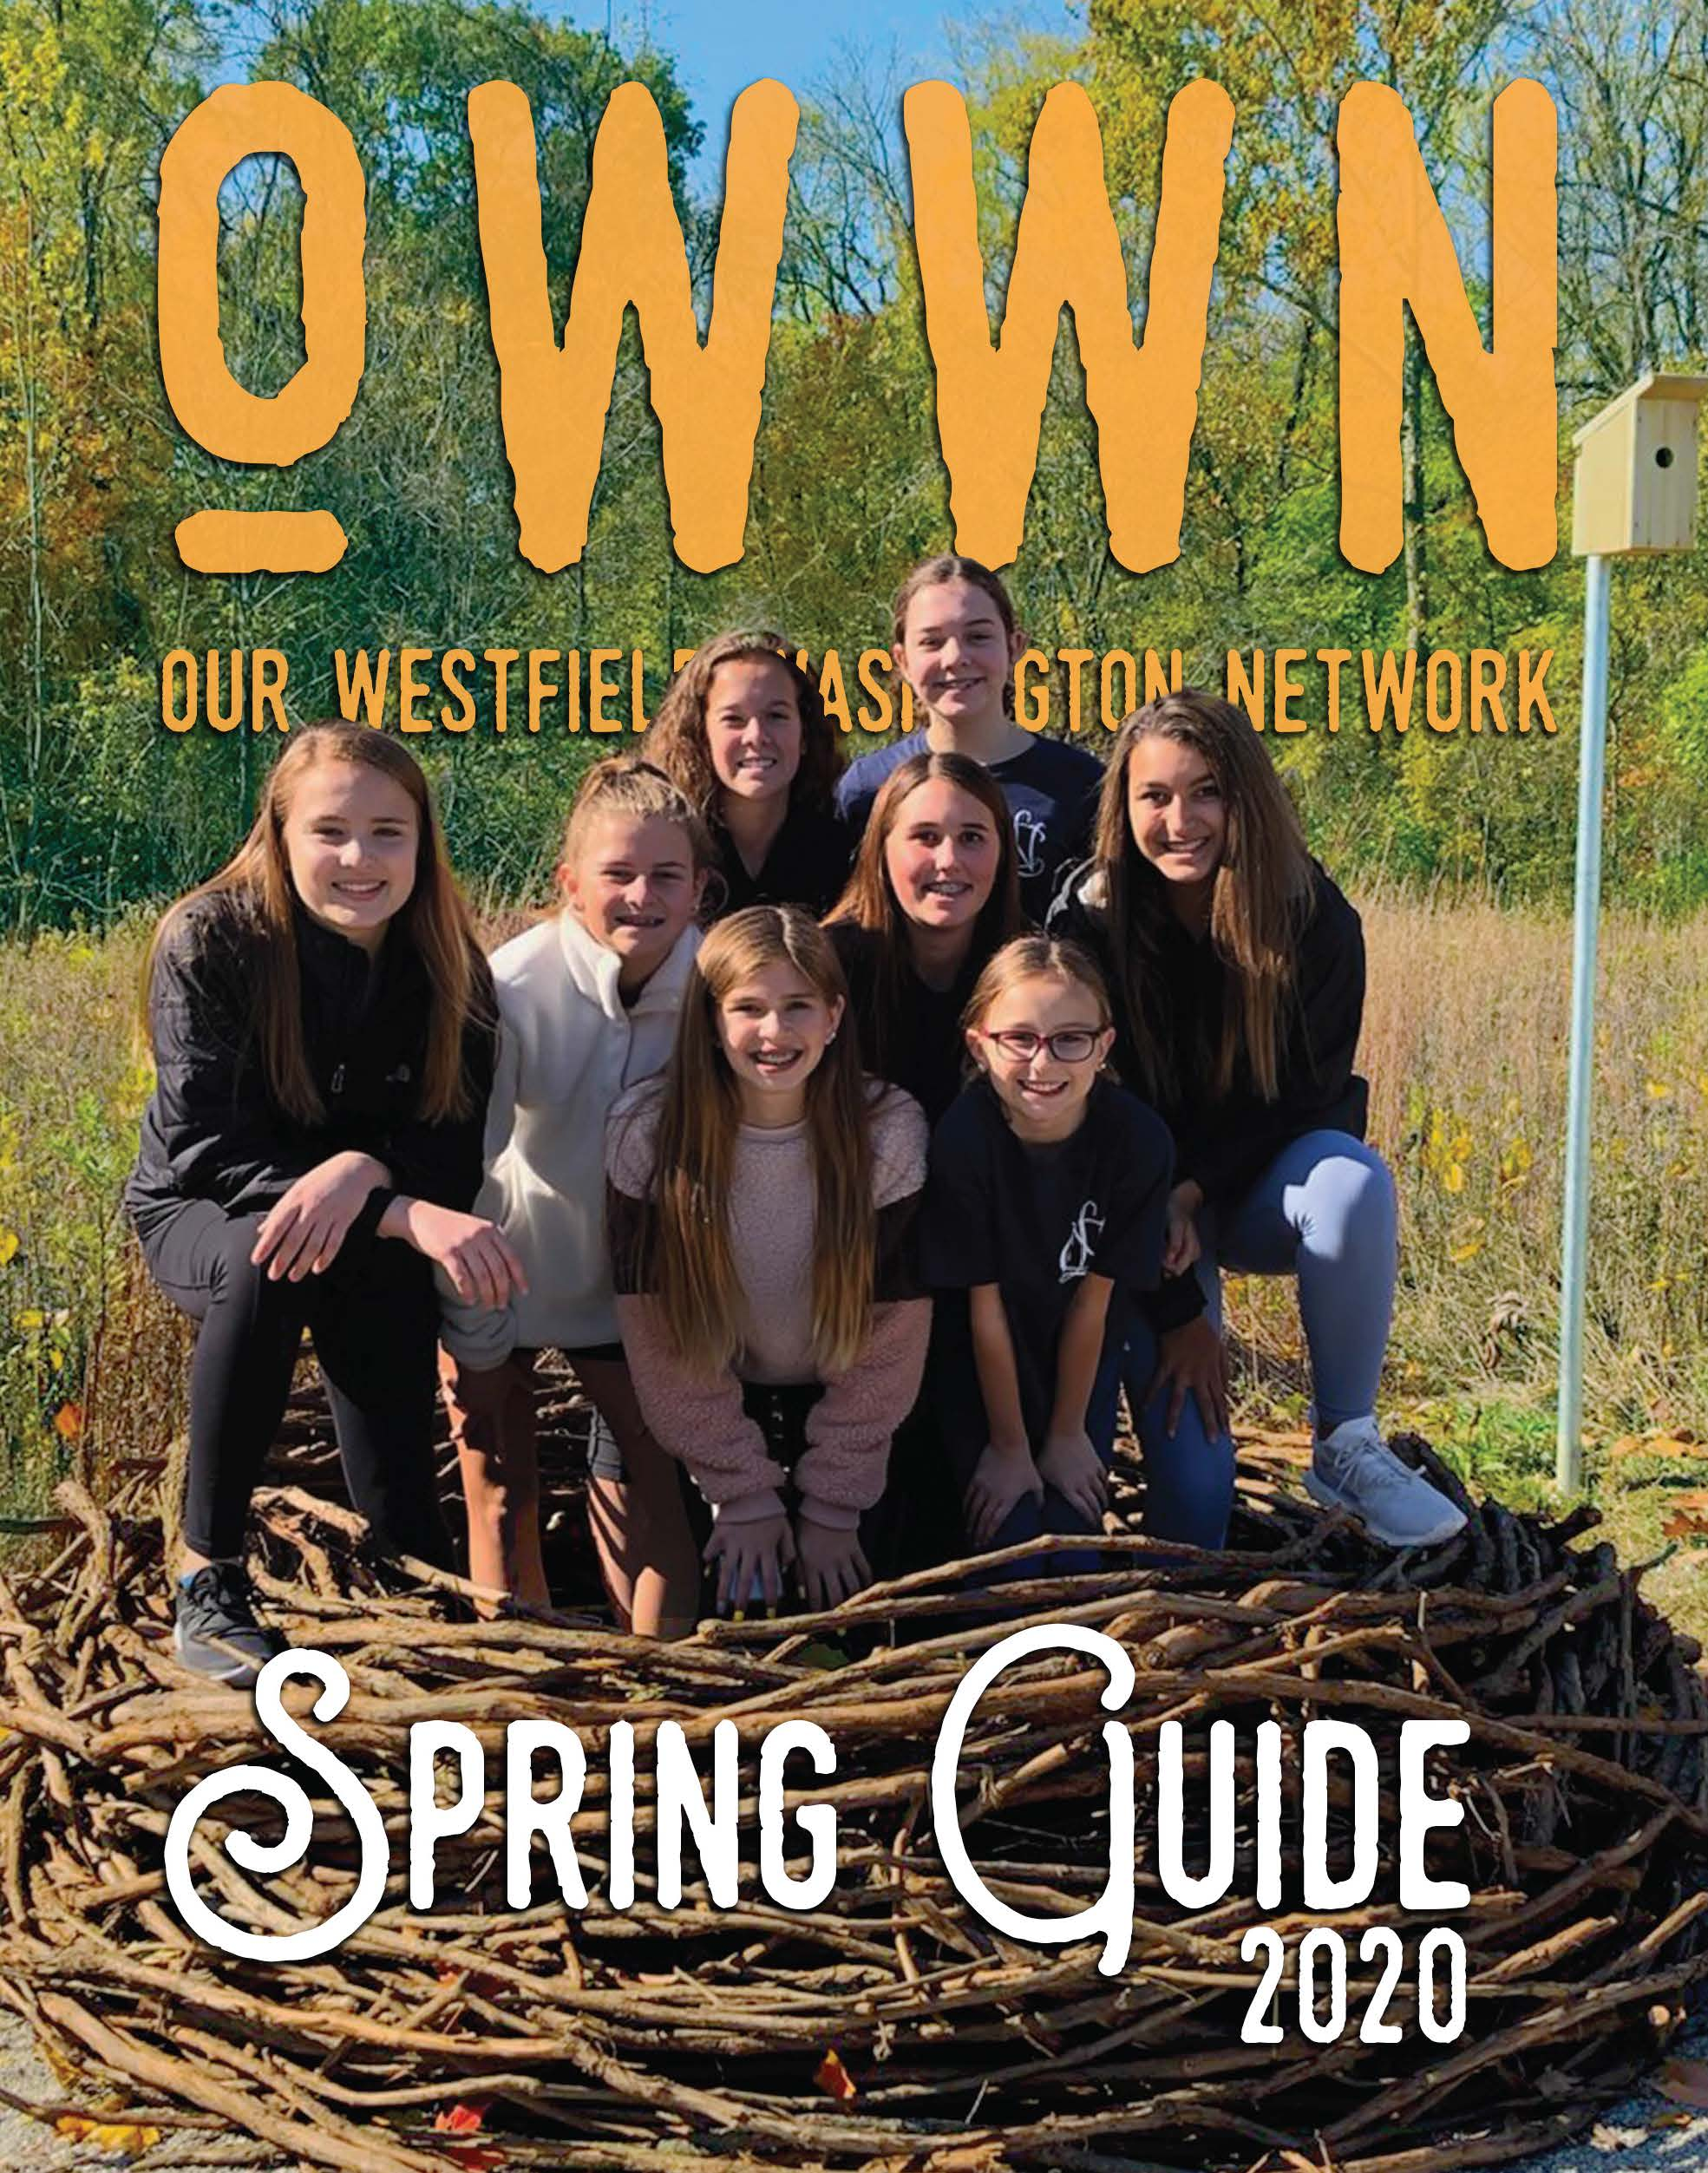 Spring guide 2020 cover